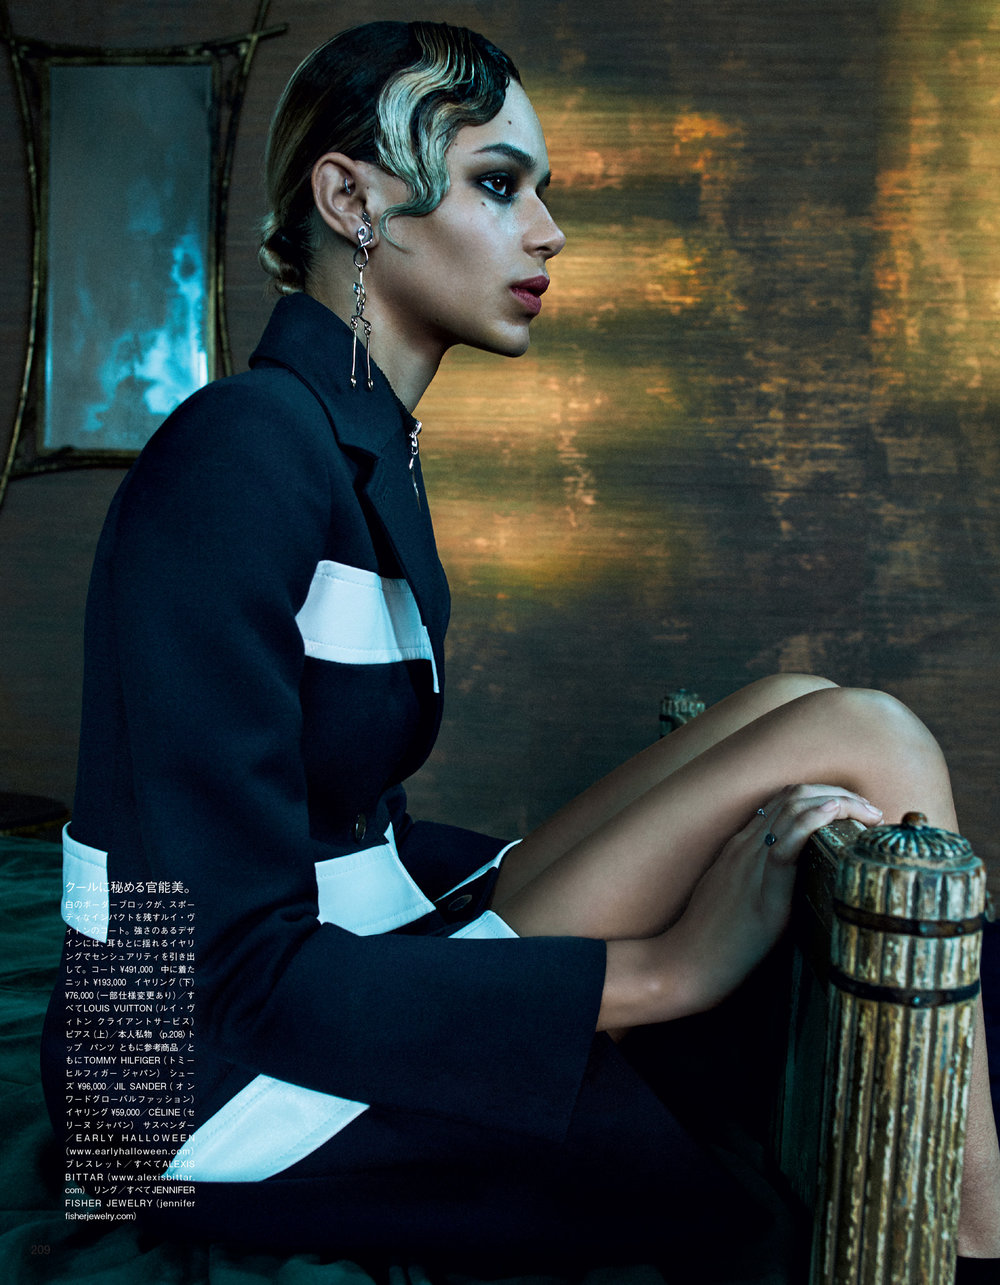 Giovanna-Battaglia-Vogue-Japan-August-2016-The-Sea-Whispers-Emma-Summerton-5.jpg